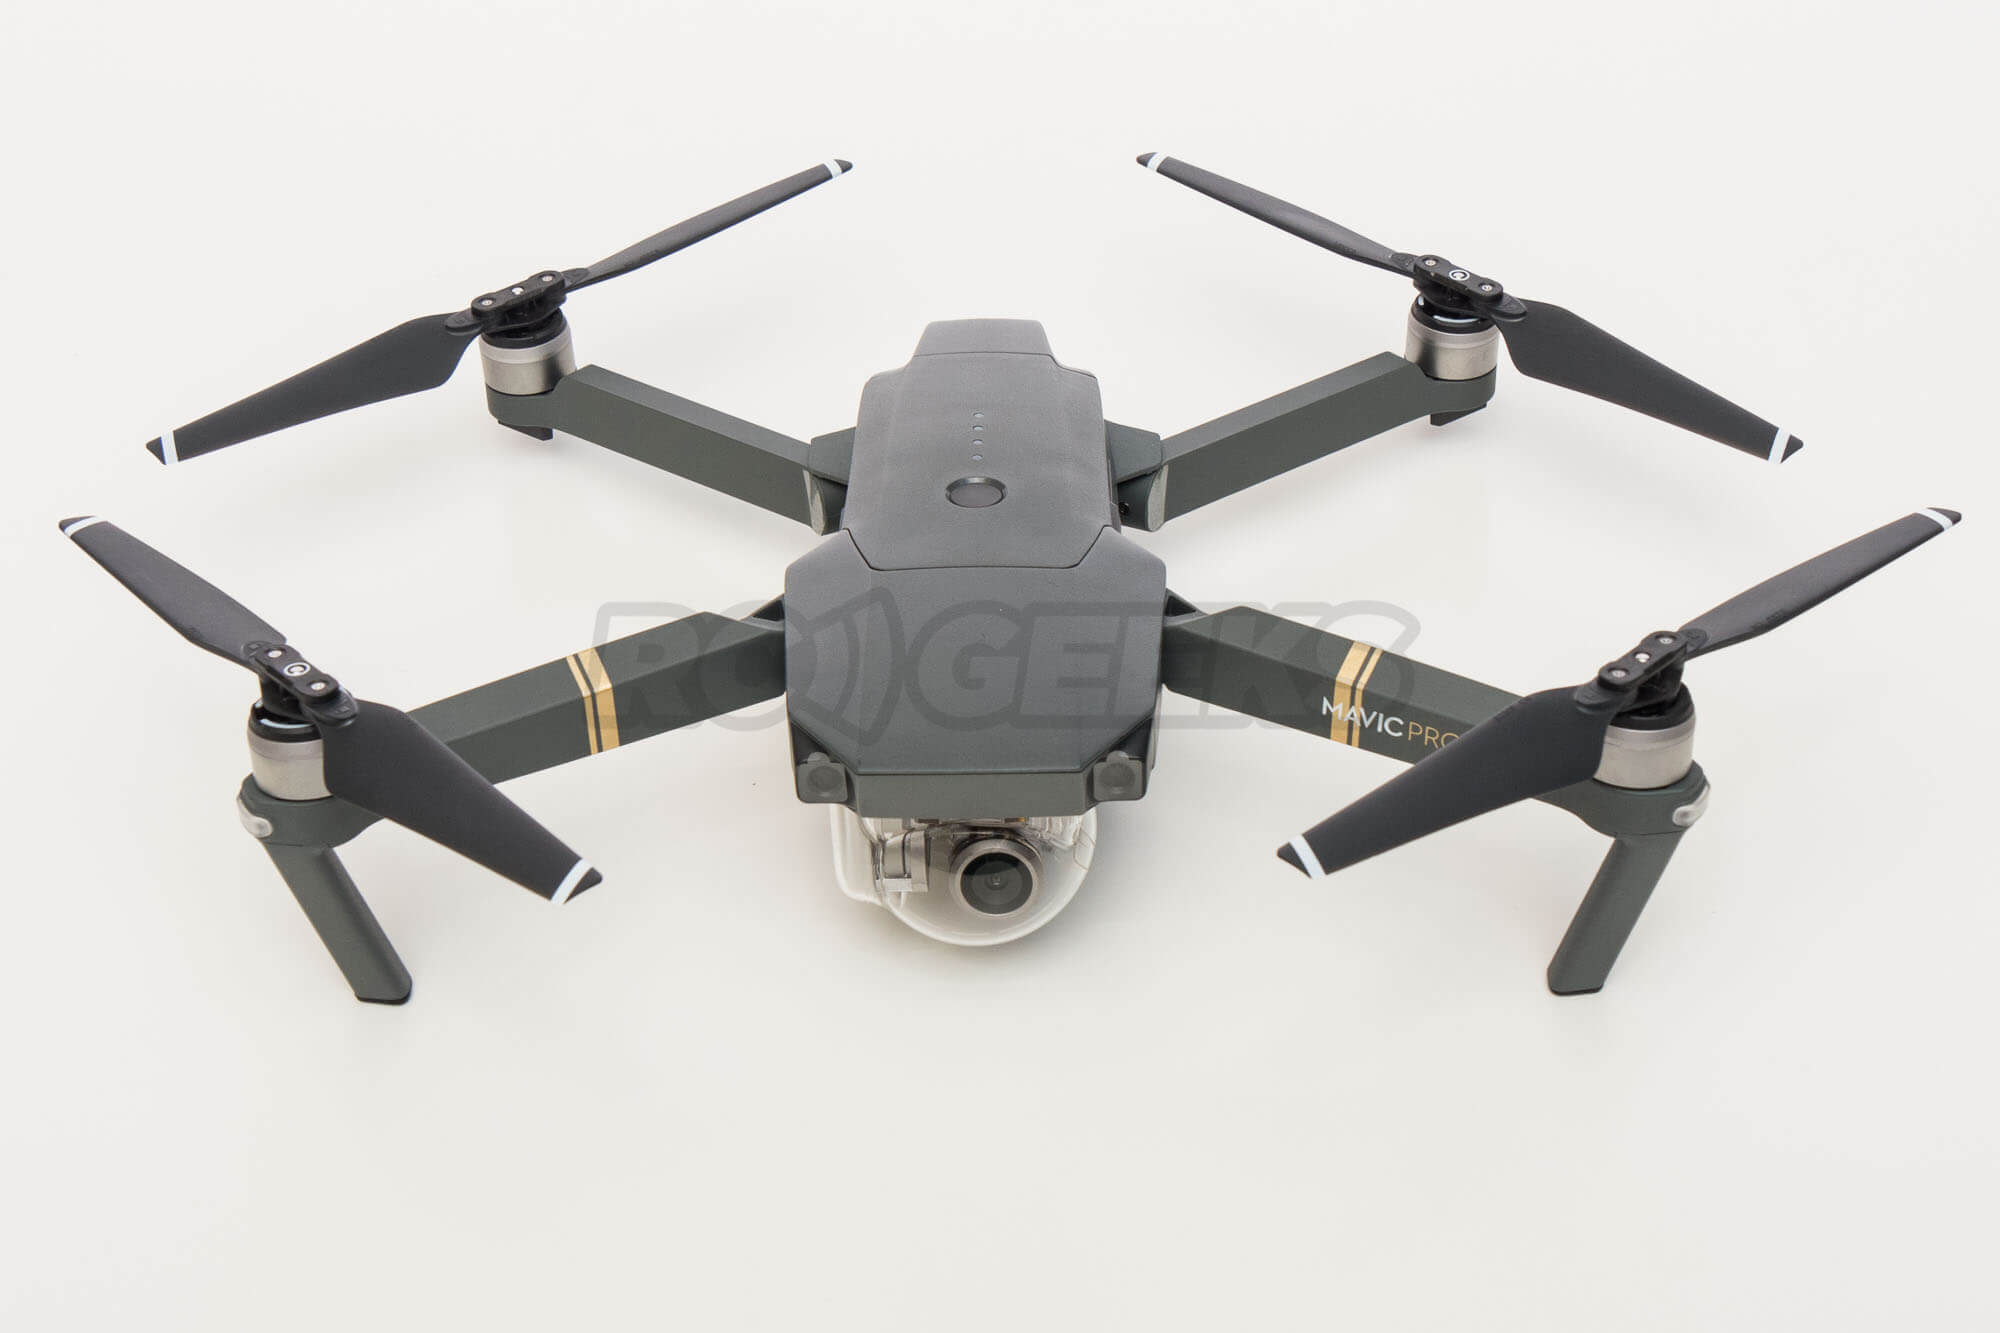 DJI-Mavic-pro-aircraft-folded-unfolded-arms-props